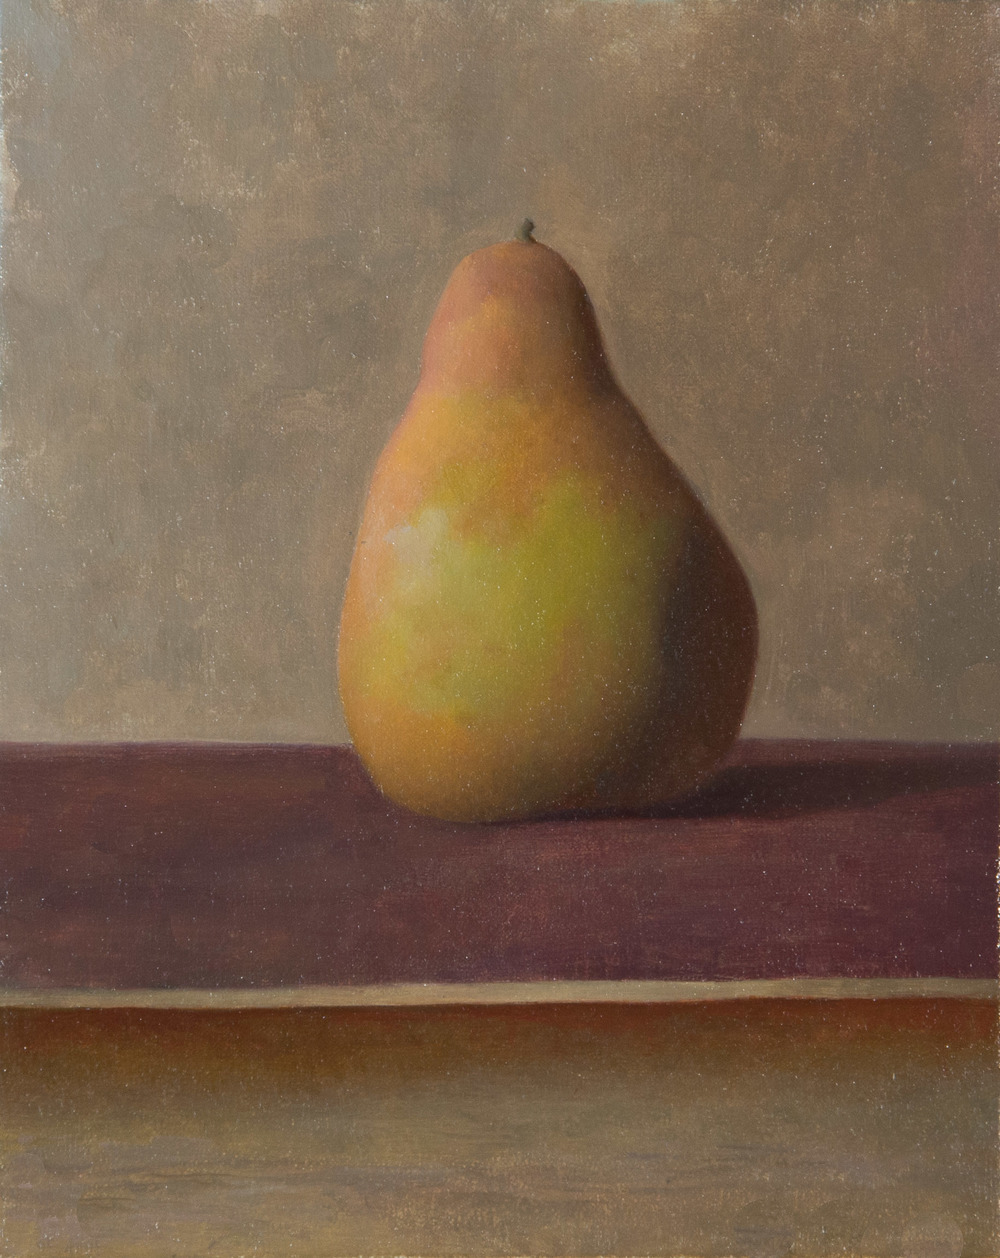 still_life_pear (1 of 1).jpg